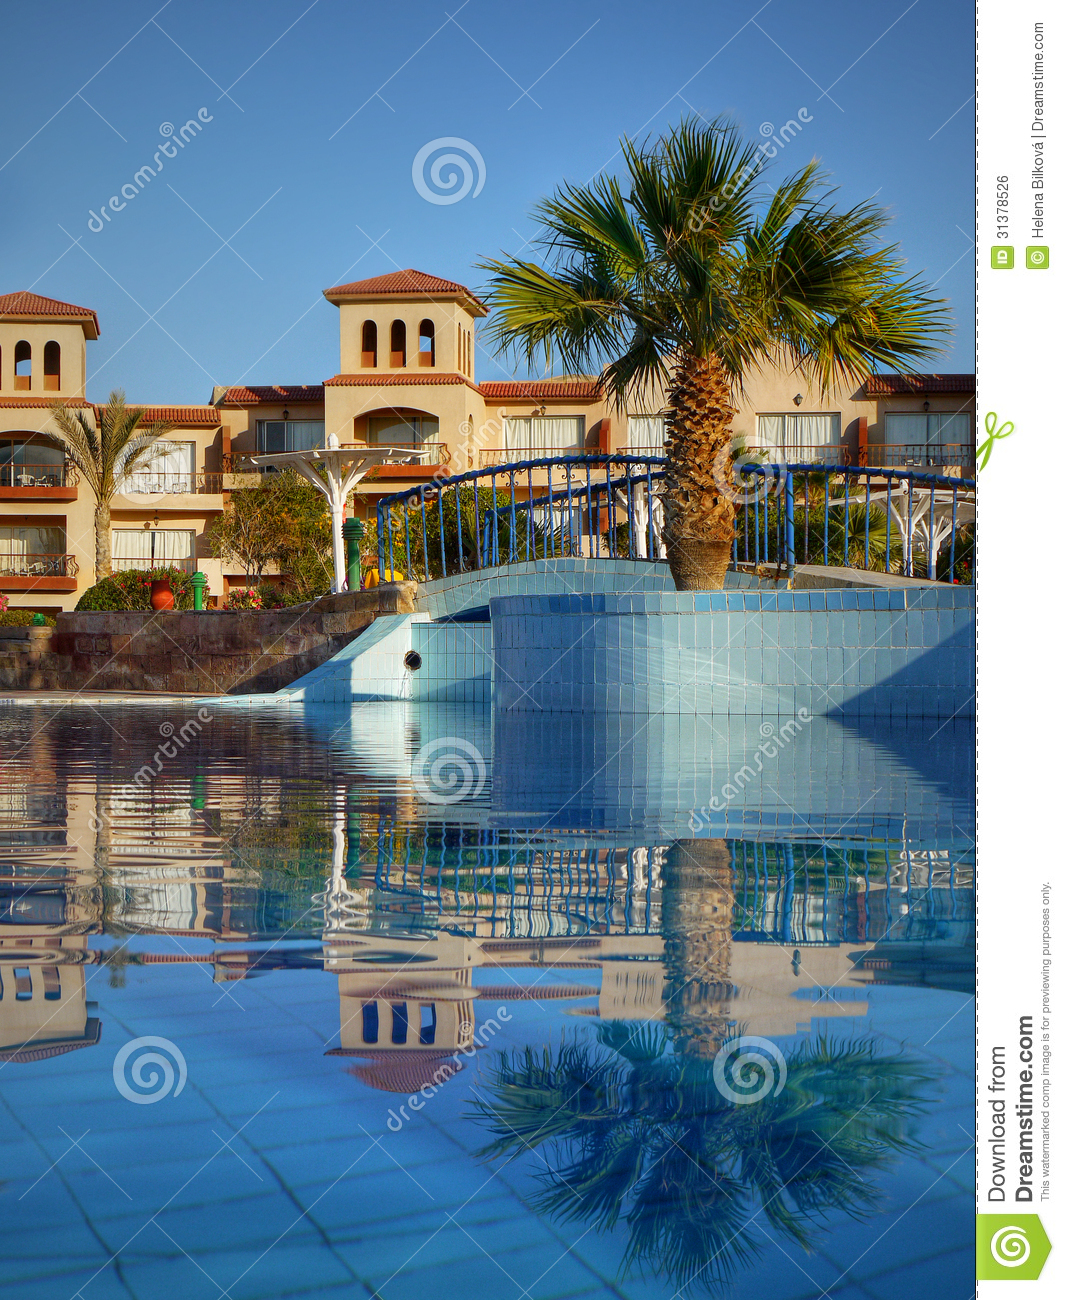 Swimming Pool Luxury Hotel Complex Egypt Royalty Free Stock Image Image 31378526